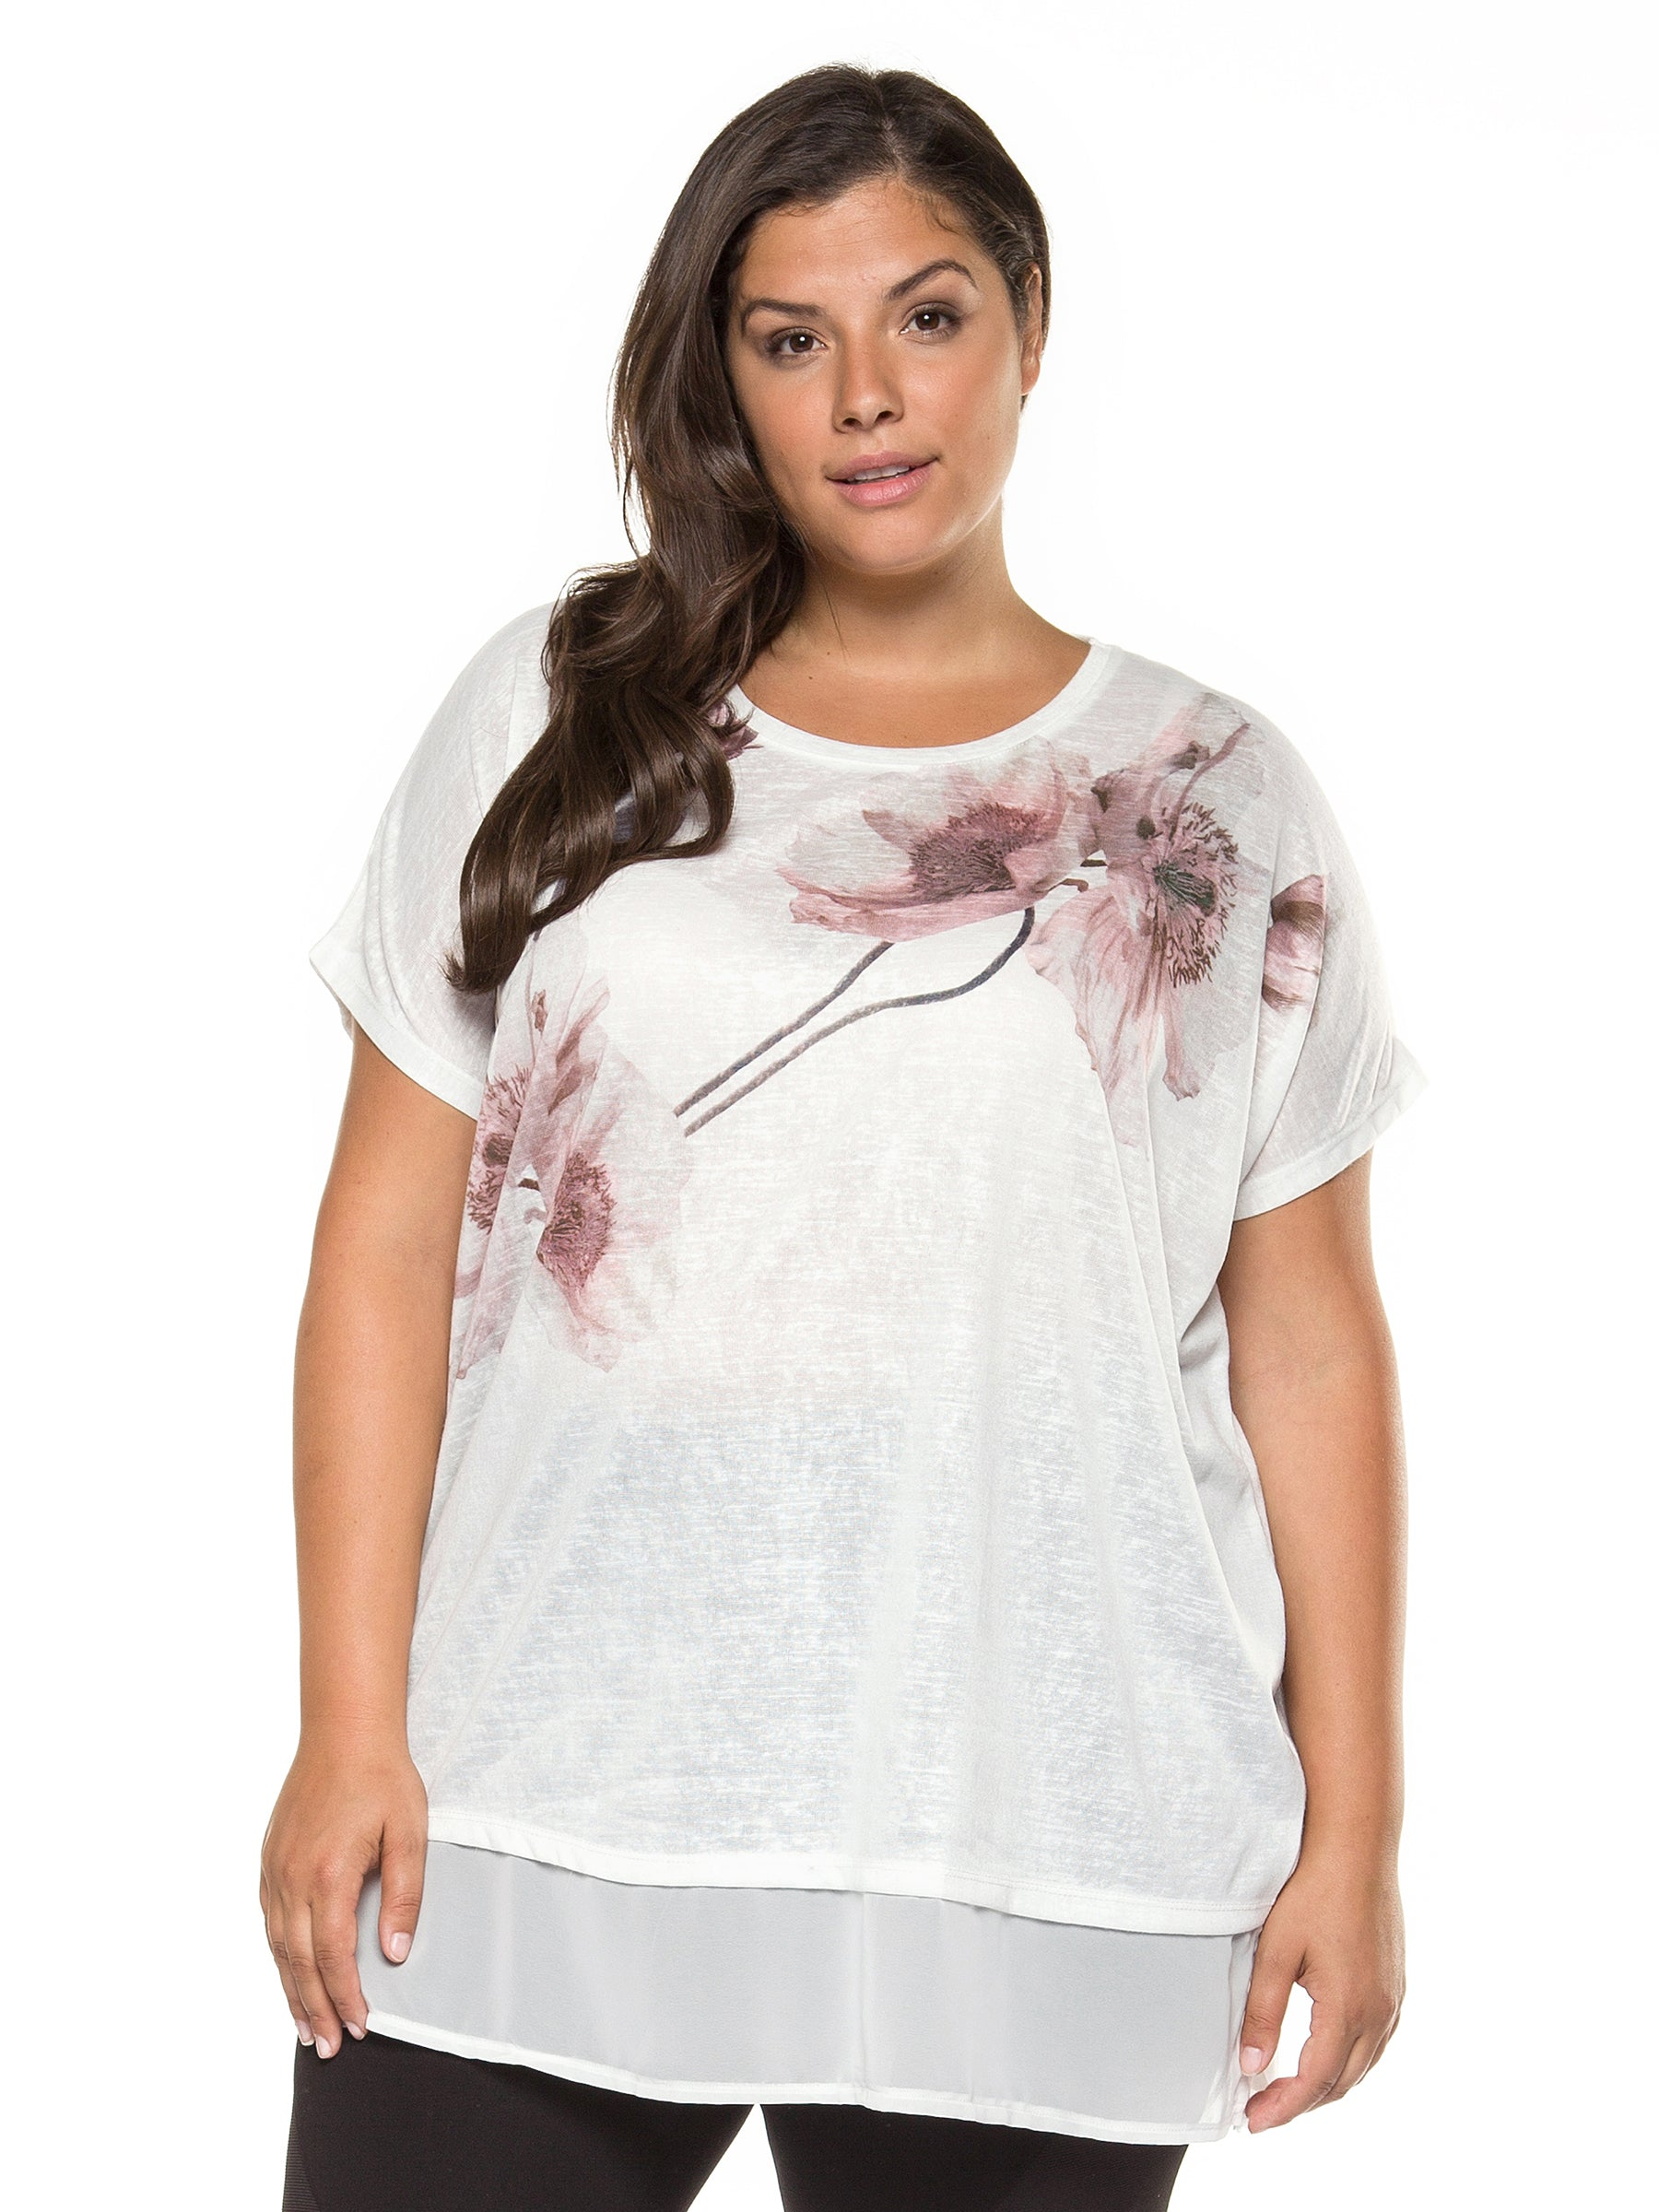 Plus Size Short Sleeve Ivory Floral Top